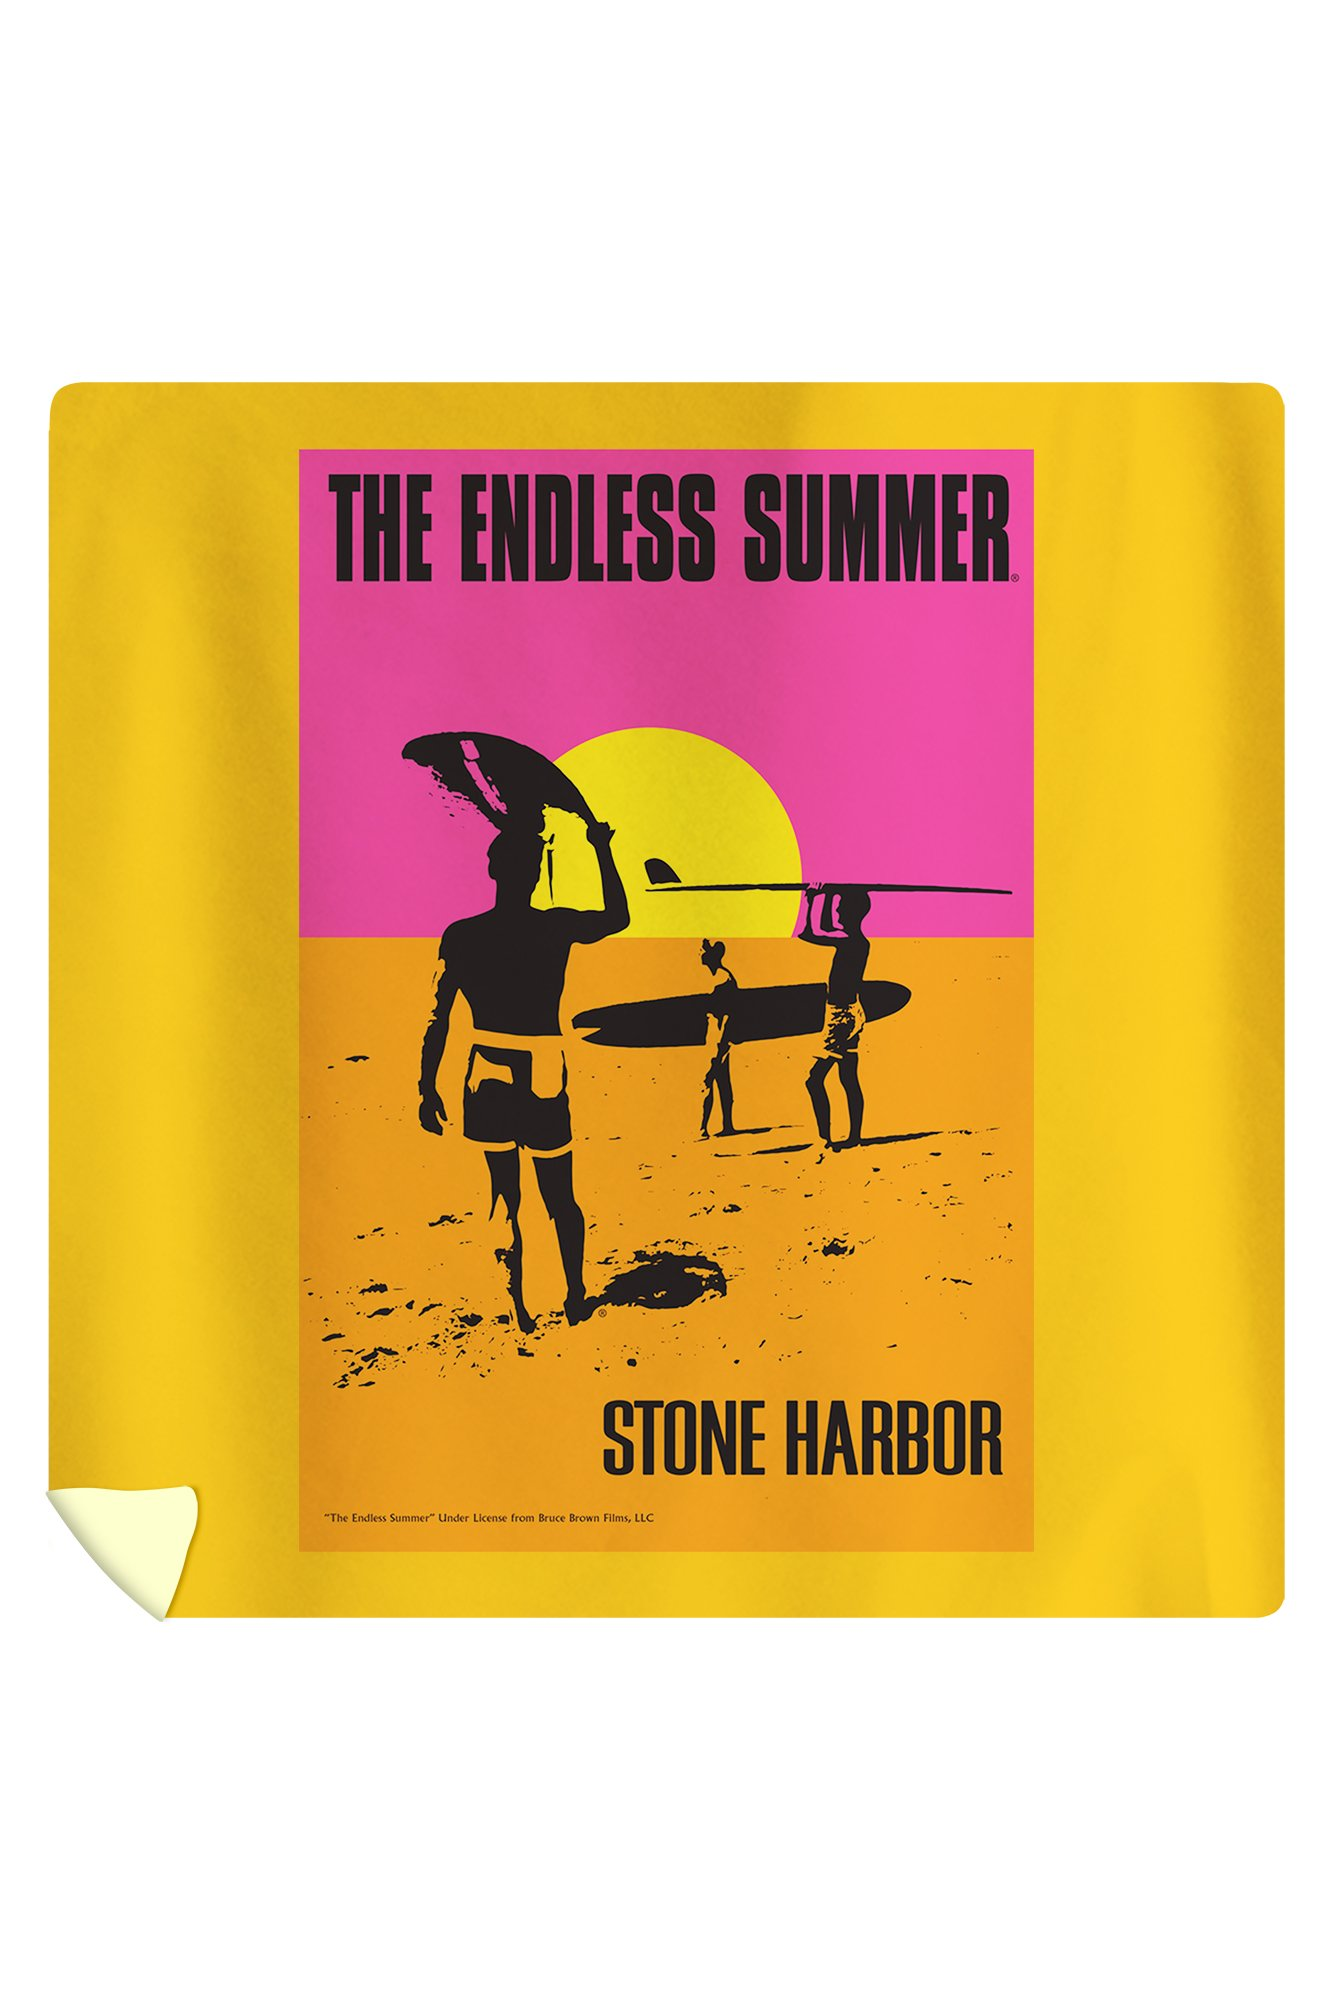 Stone Harbor, New Jersey - The Endless Summer - Original Movie Poster (88x88 Queen Microfiber Duvet Cover)